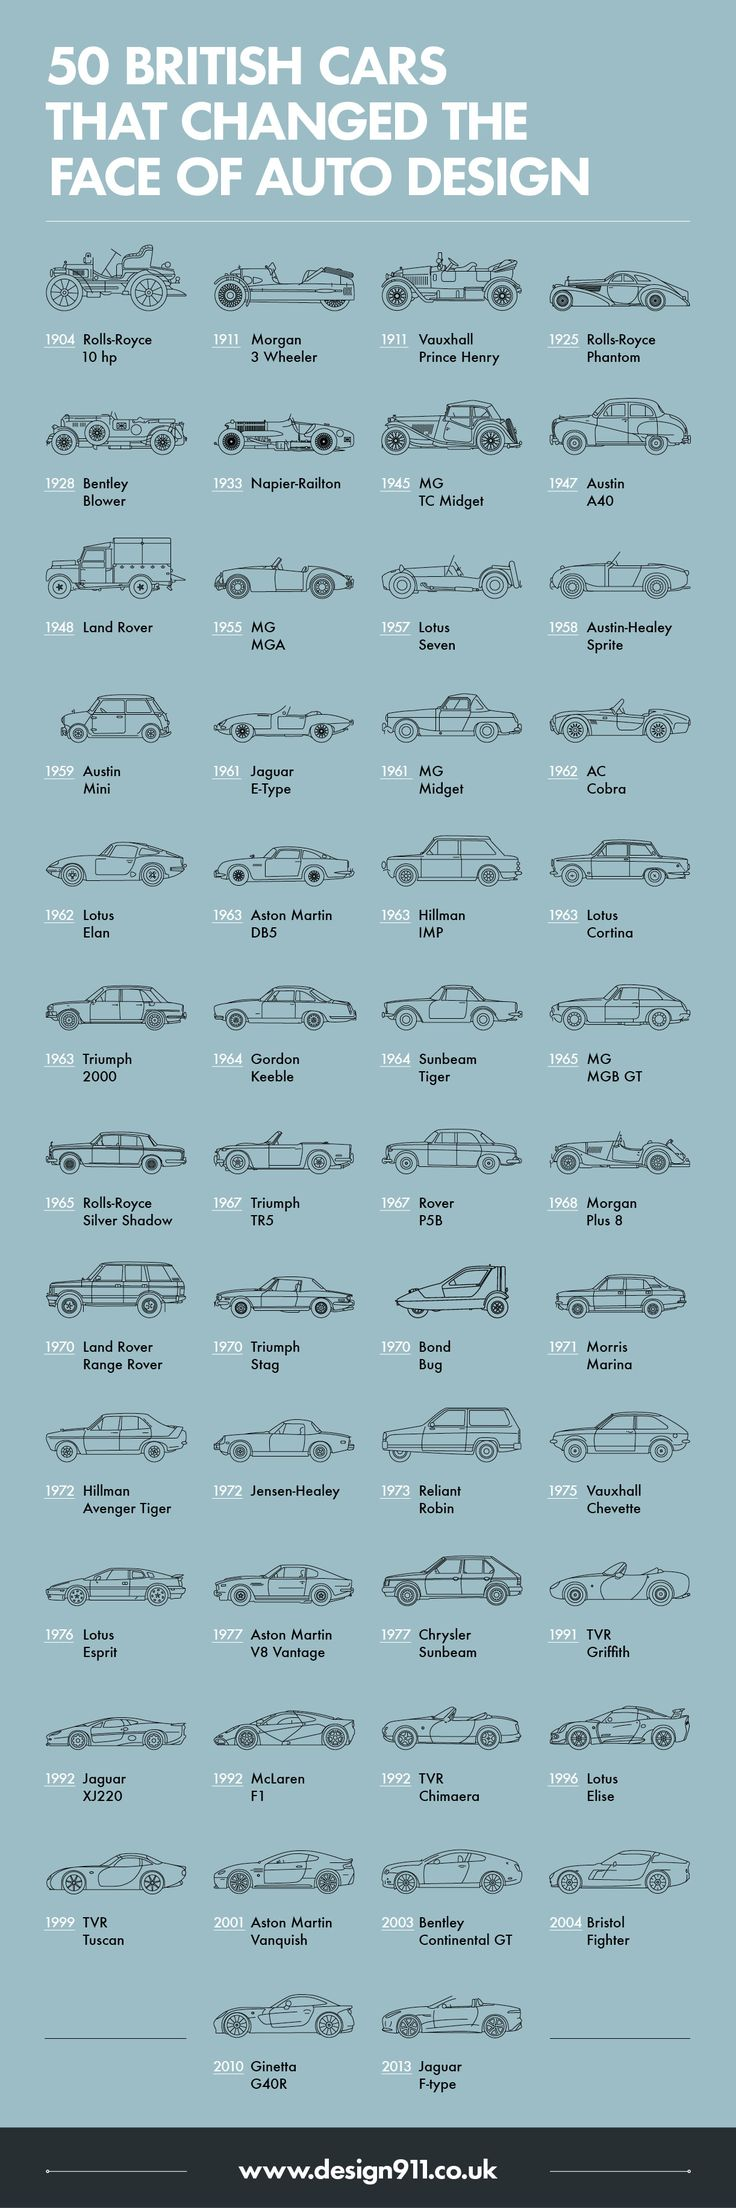 50 British Cars that Changed The Face of Auto Design  #RePin by AT Social Media Marketing - Pinterest Marketing Specialists ATSocialMedia.co.uk